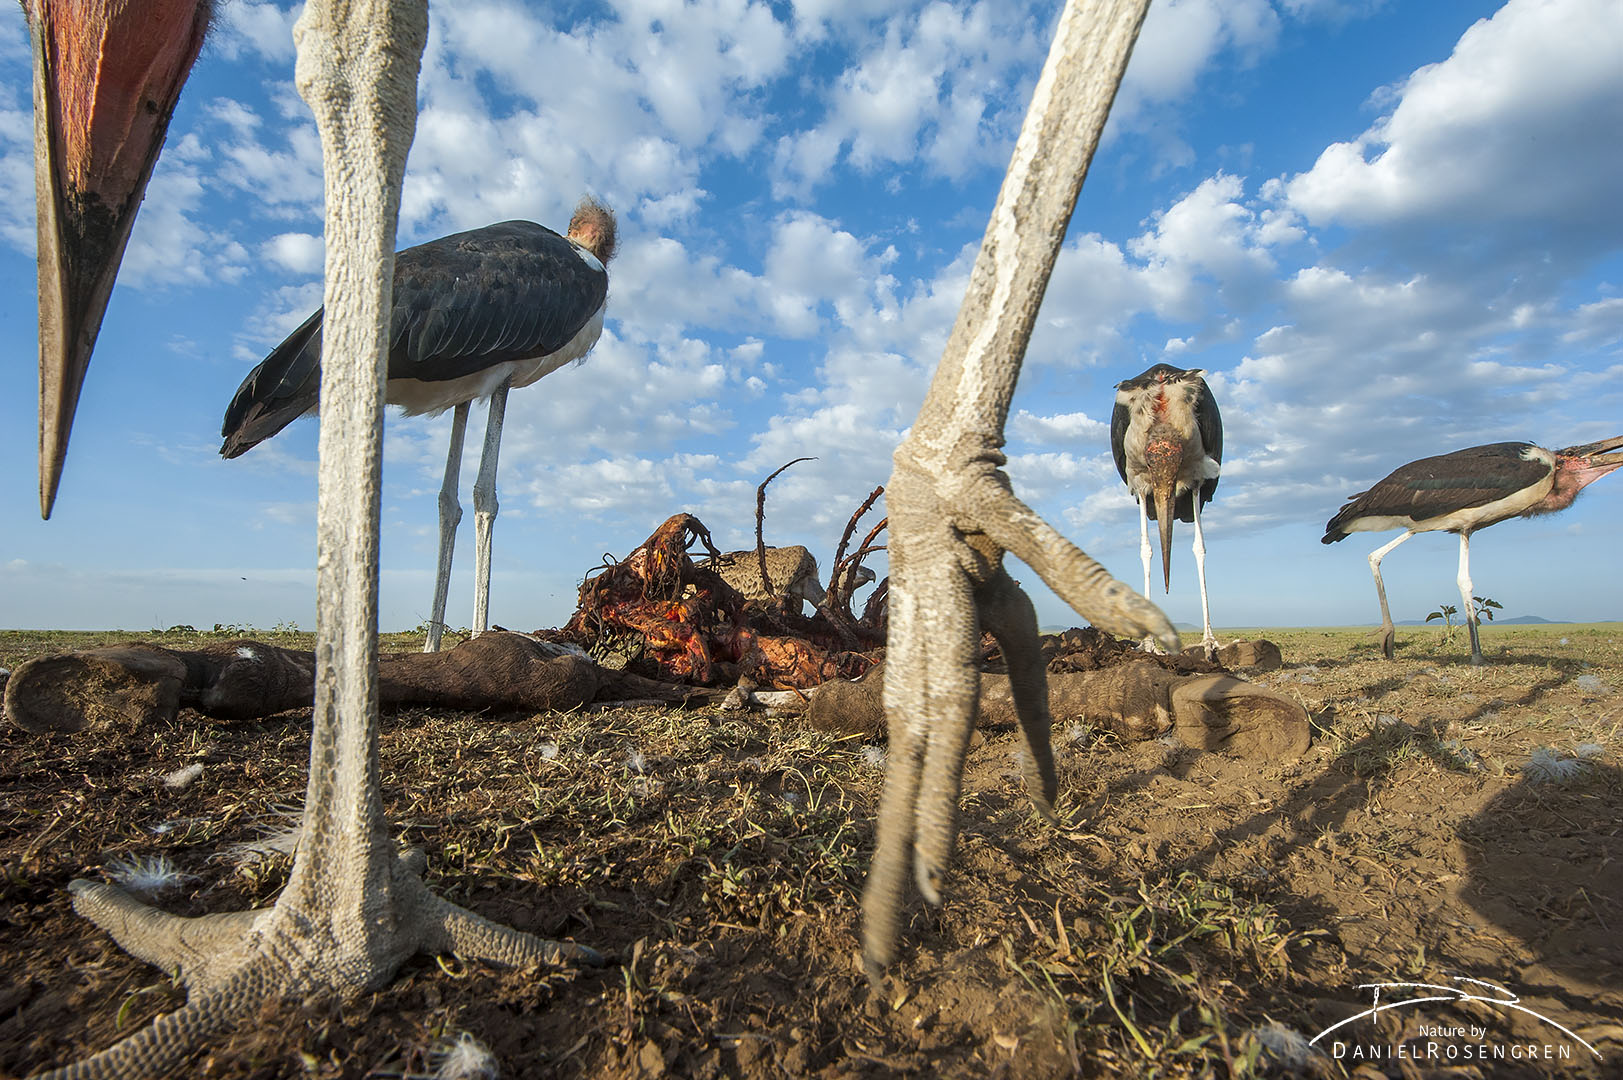 Up close and personal with Marabou storks. © Daniel Rosengren